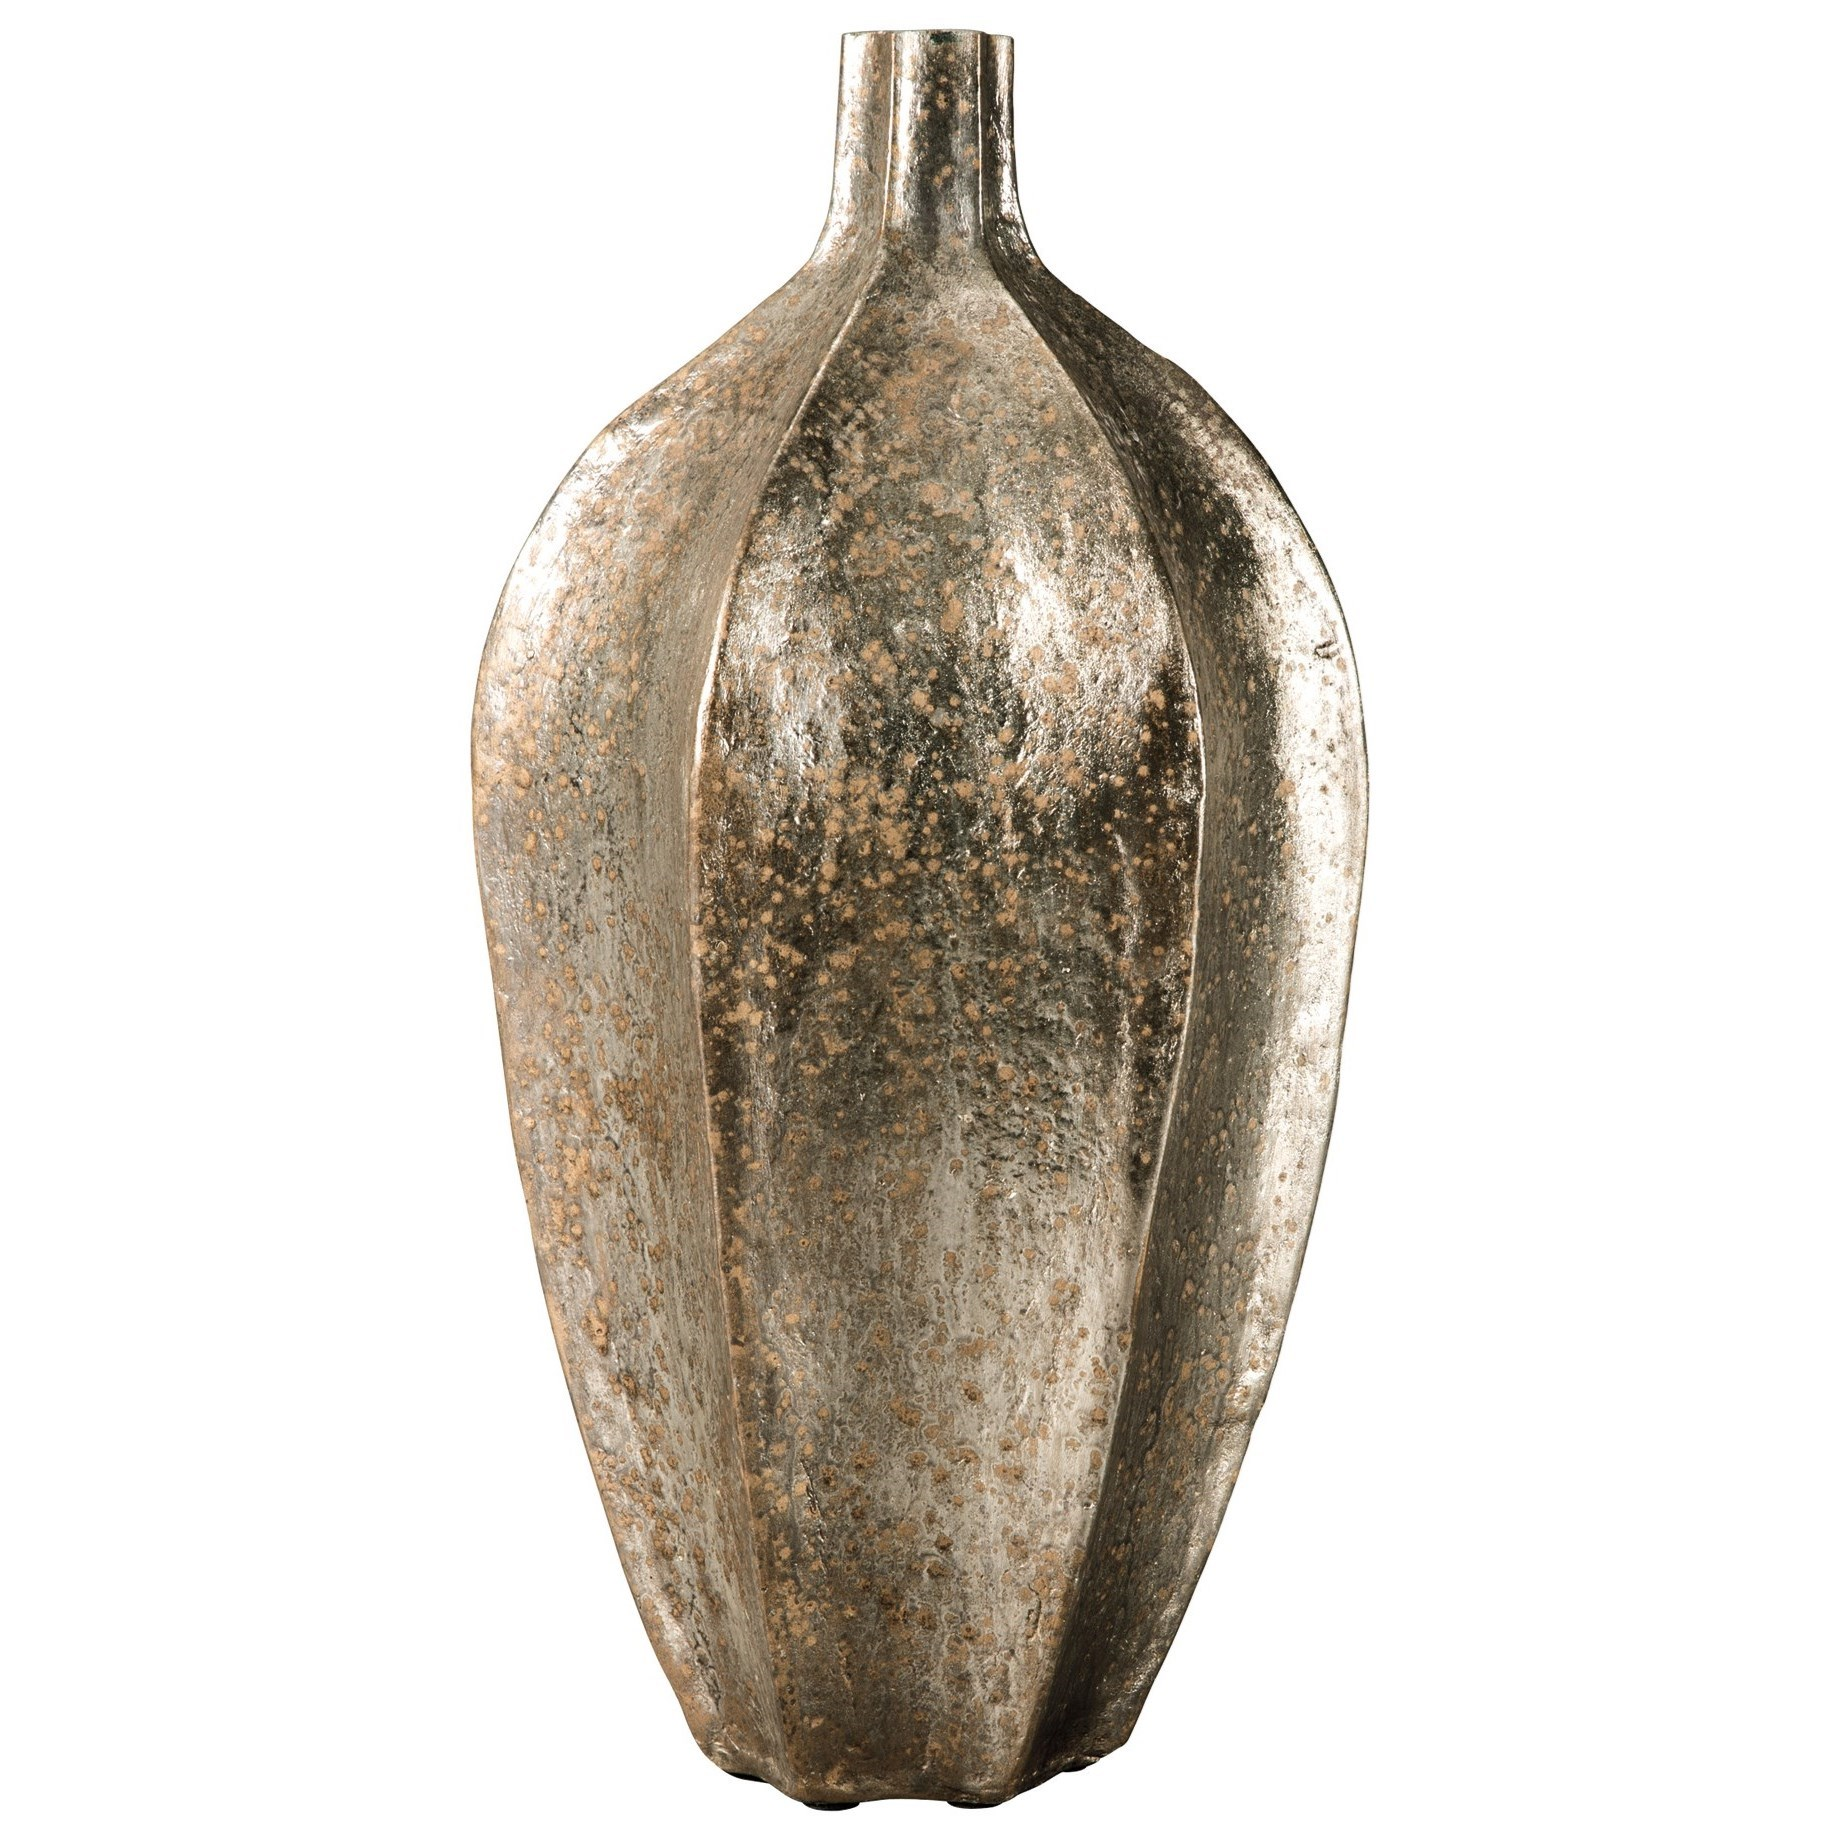 Signature Design by Ashley Accents Derion Antique Gold Finish Vase - Item Number: A2000302